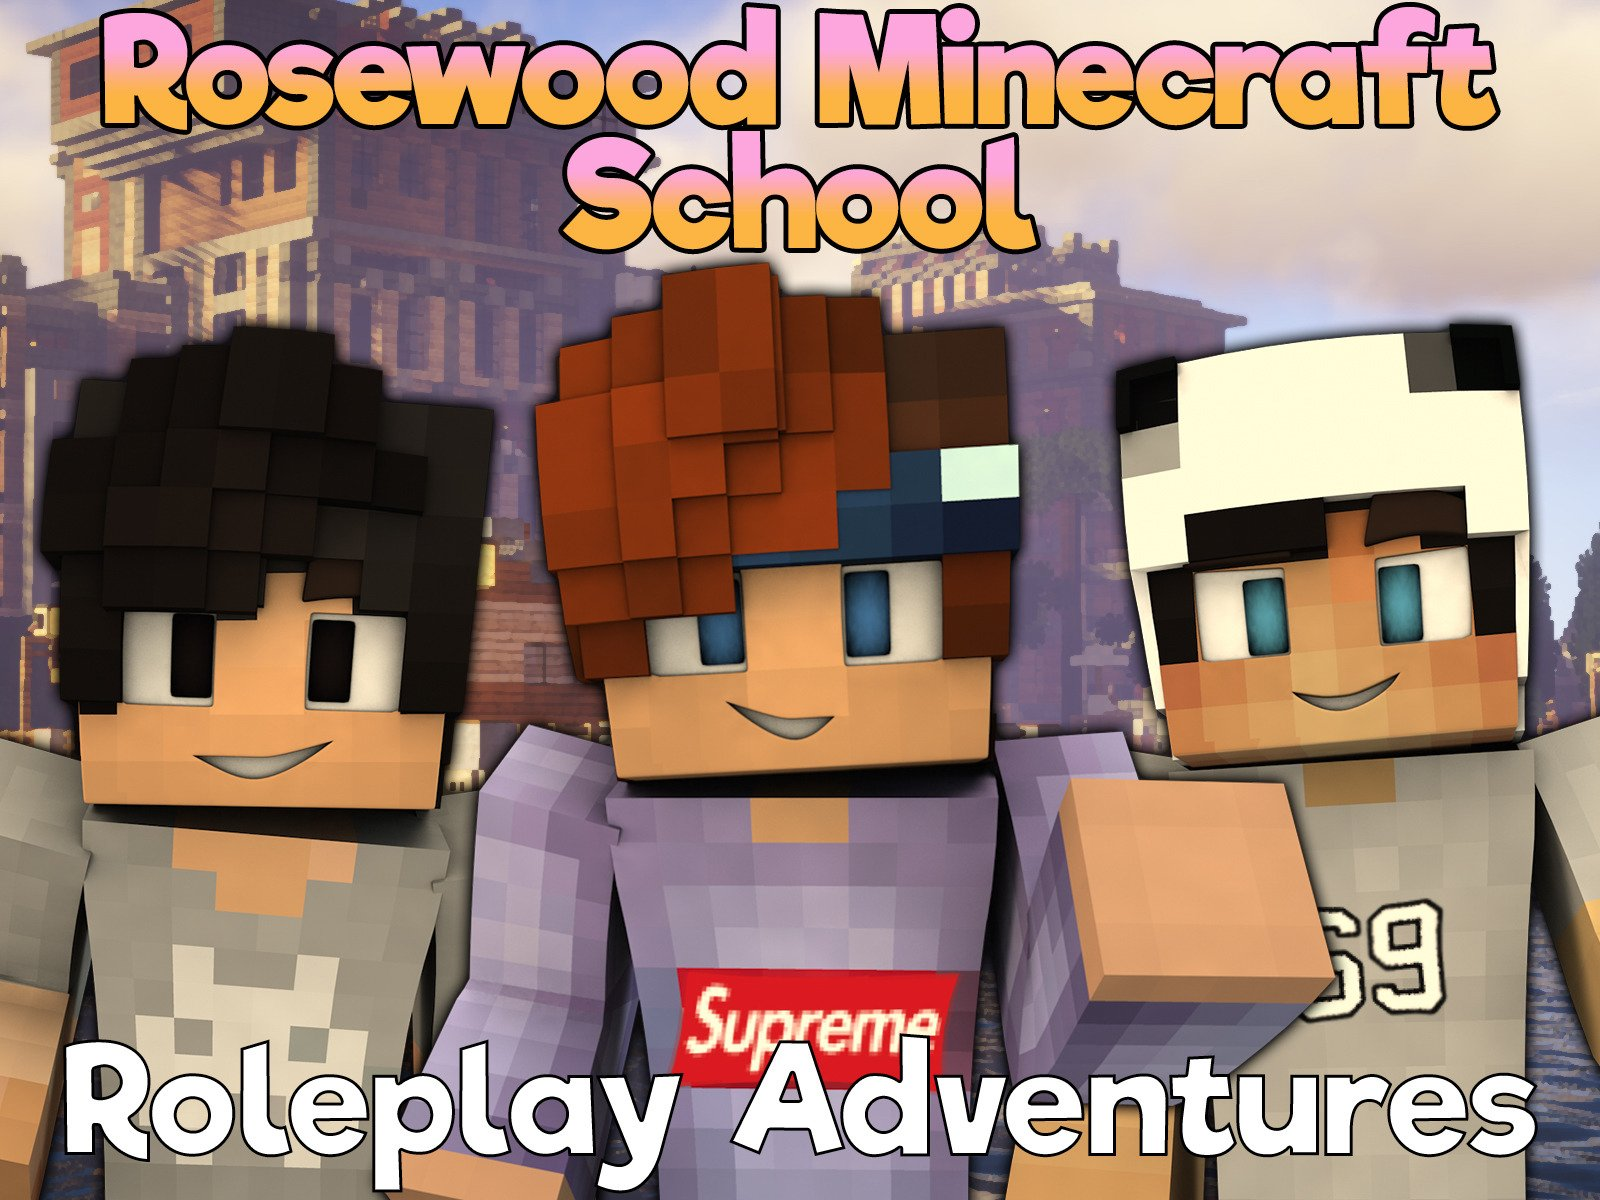 Clip: Rosewood Minecraft School (Roleplay Adventures)